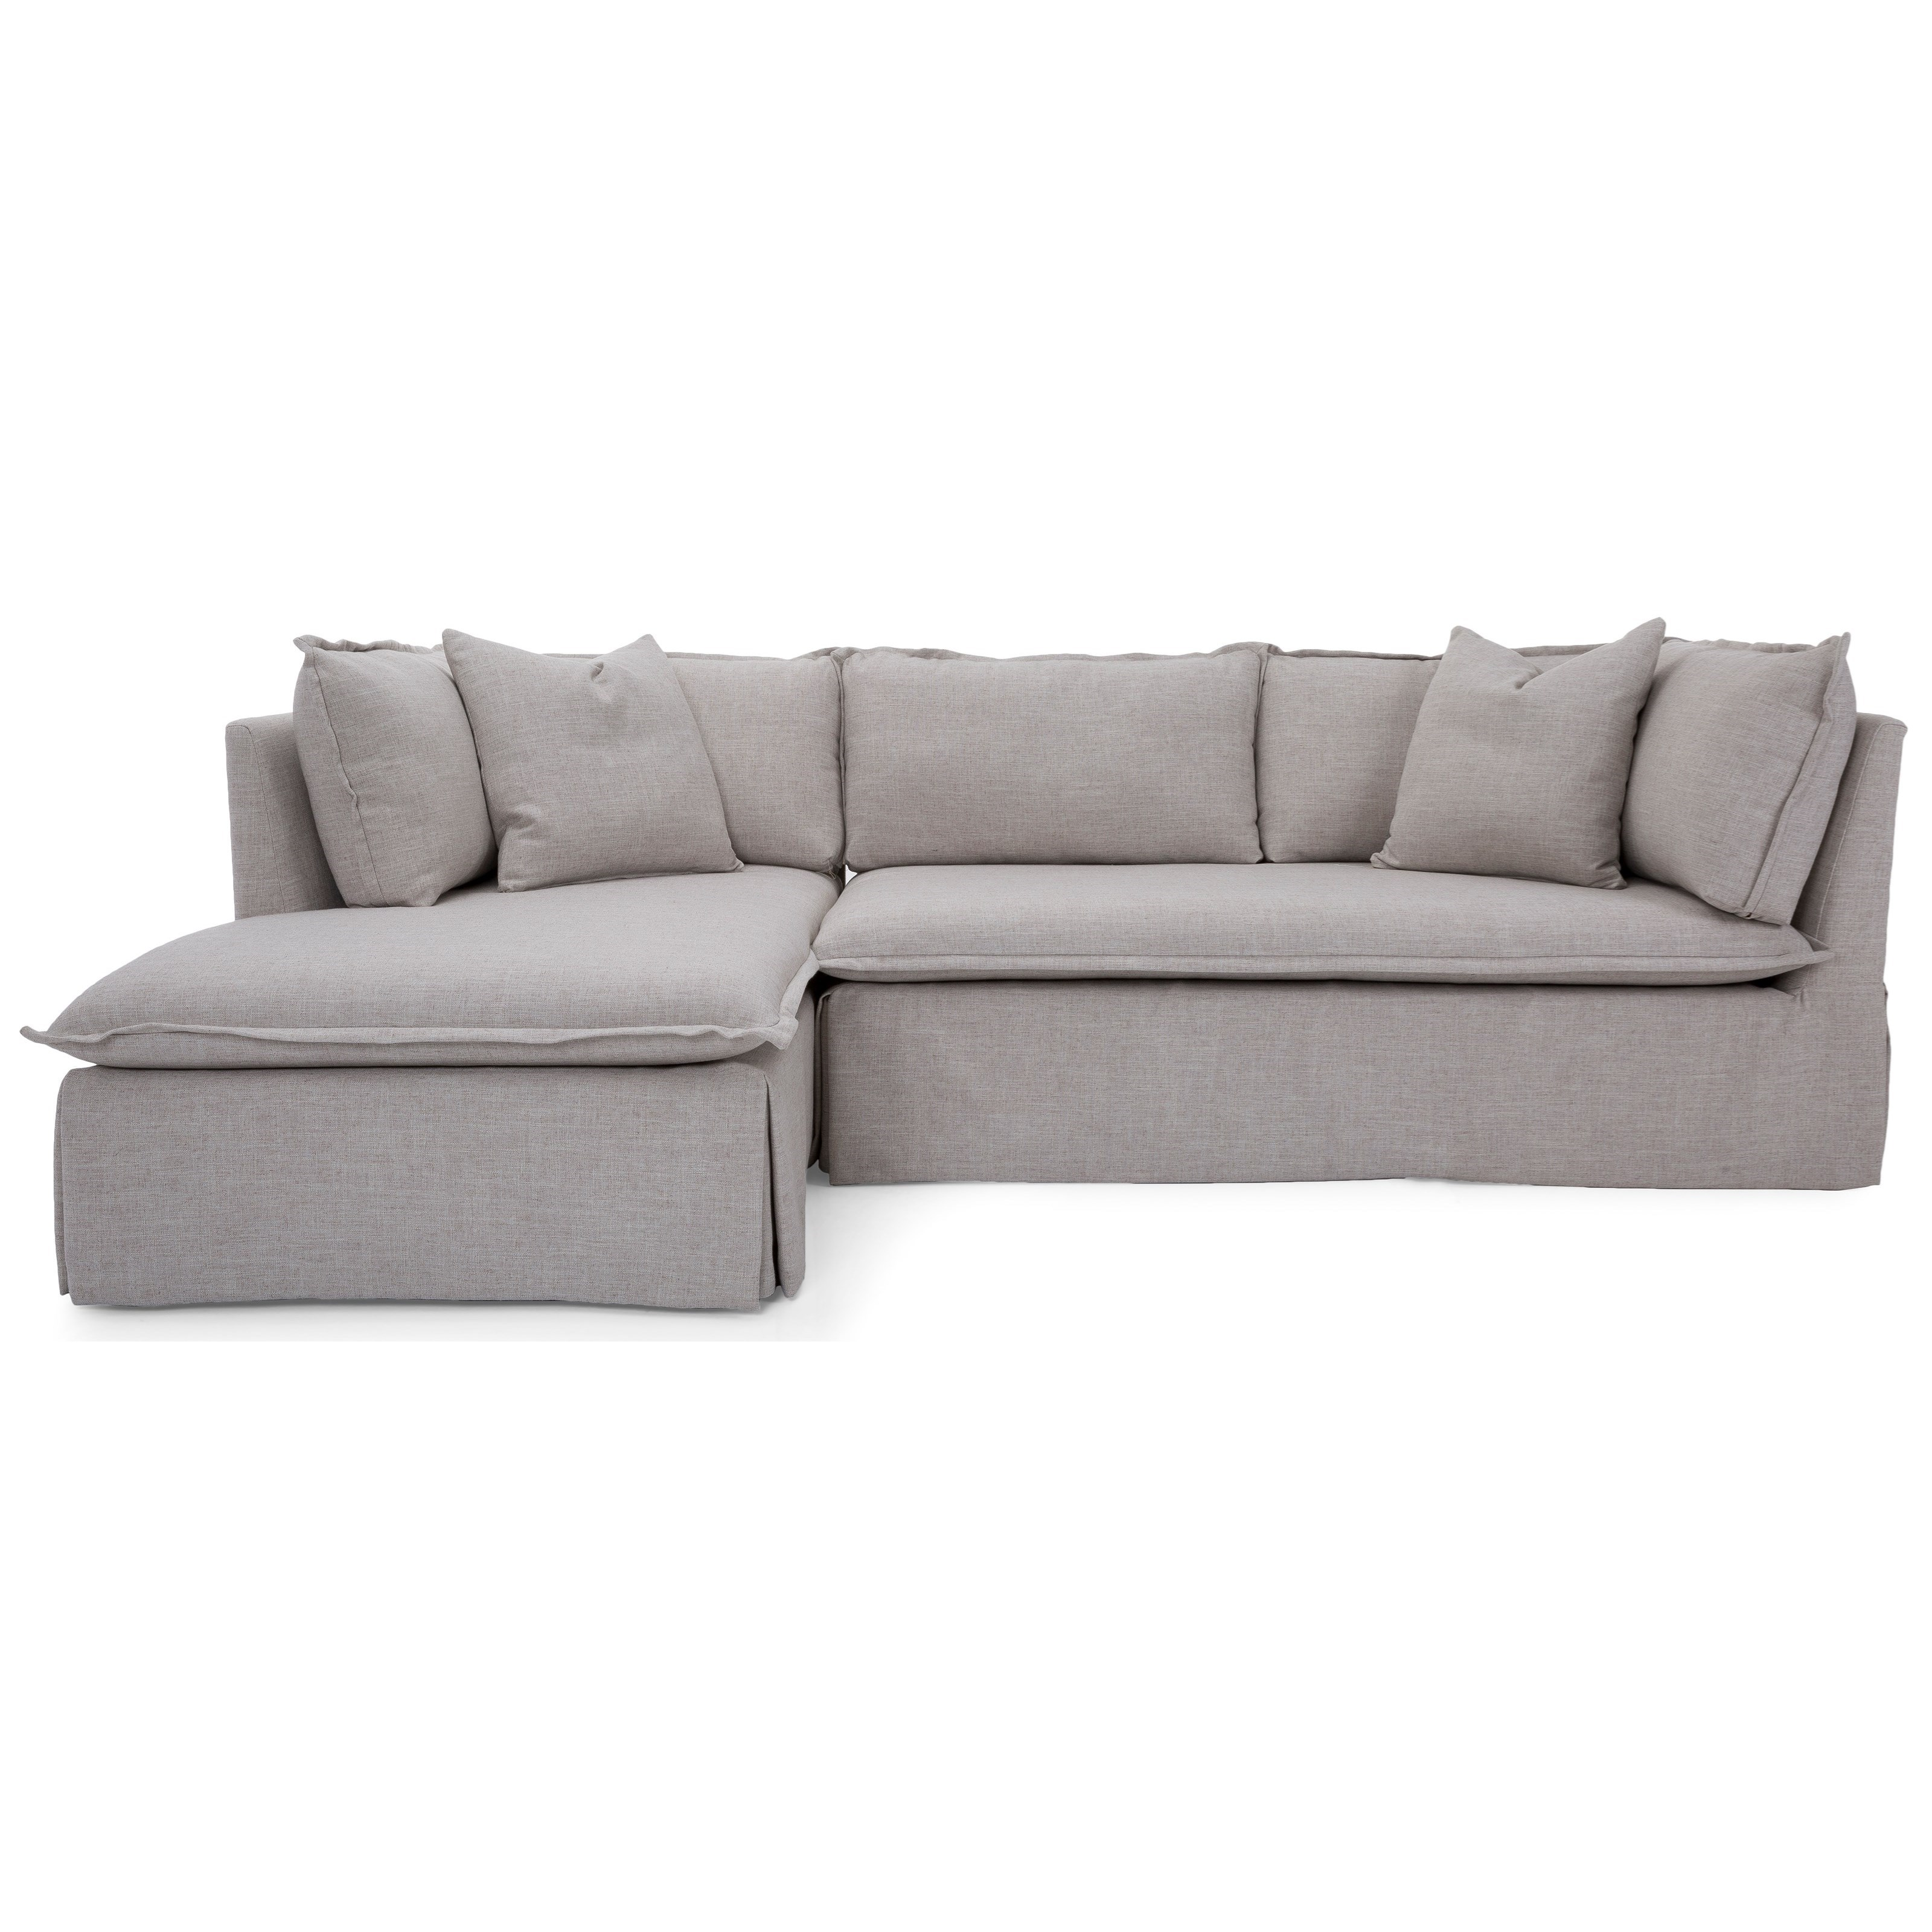 7075 Sofa with Chaise by Taelor Designs at Bennett's Furniture and Mattresses